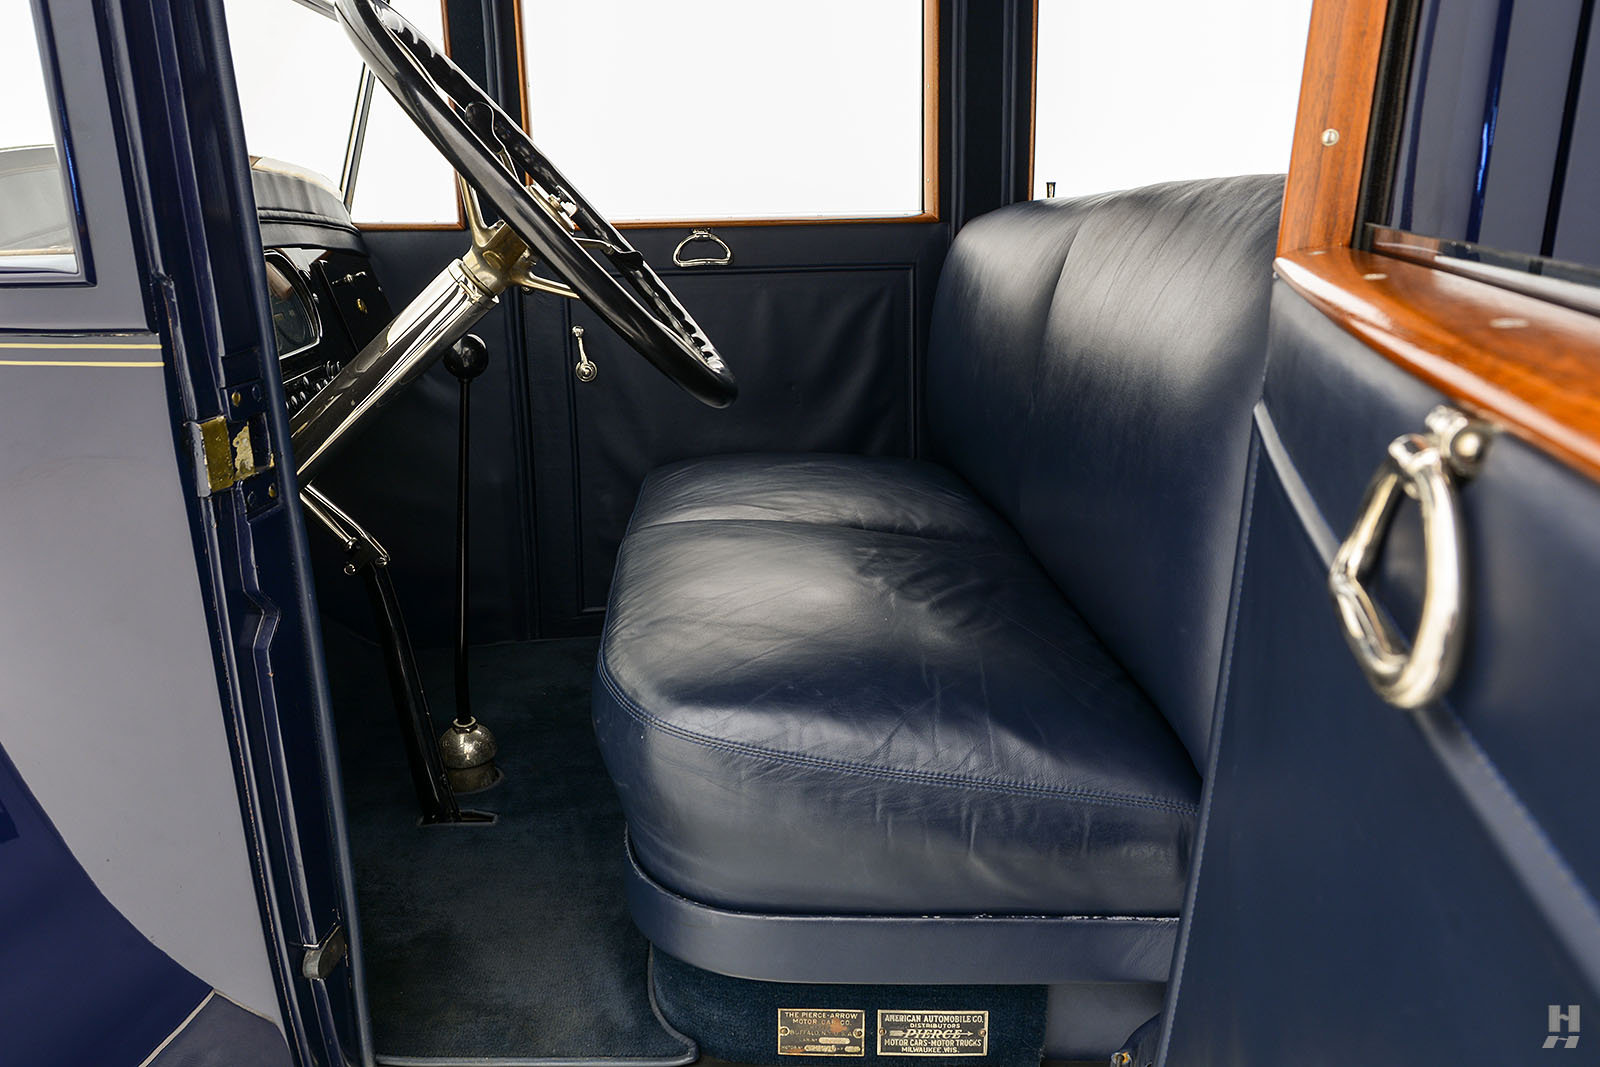 1921 PIERCE ARROW MODEL 32 VESTIBULE SUBURBAN For Sale (picture 3 of 6)